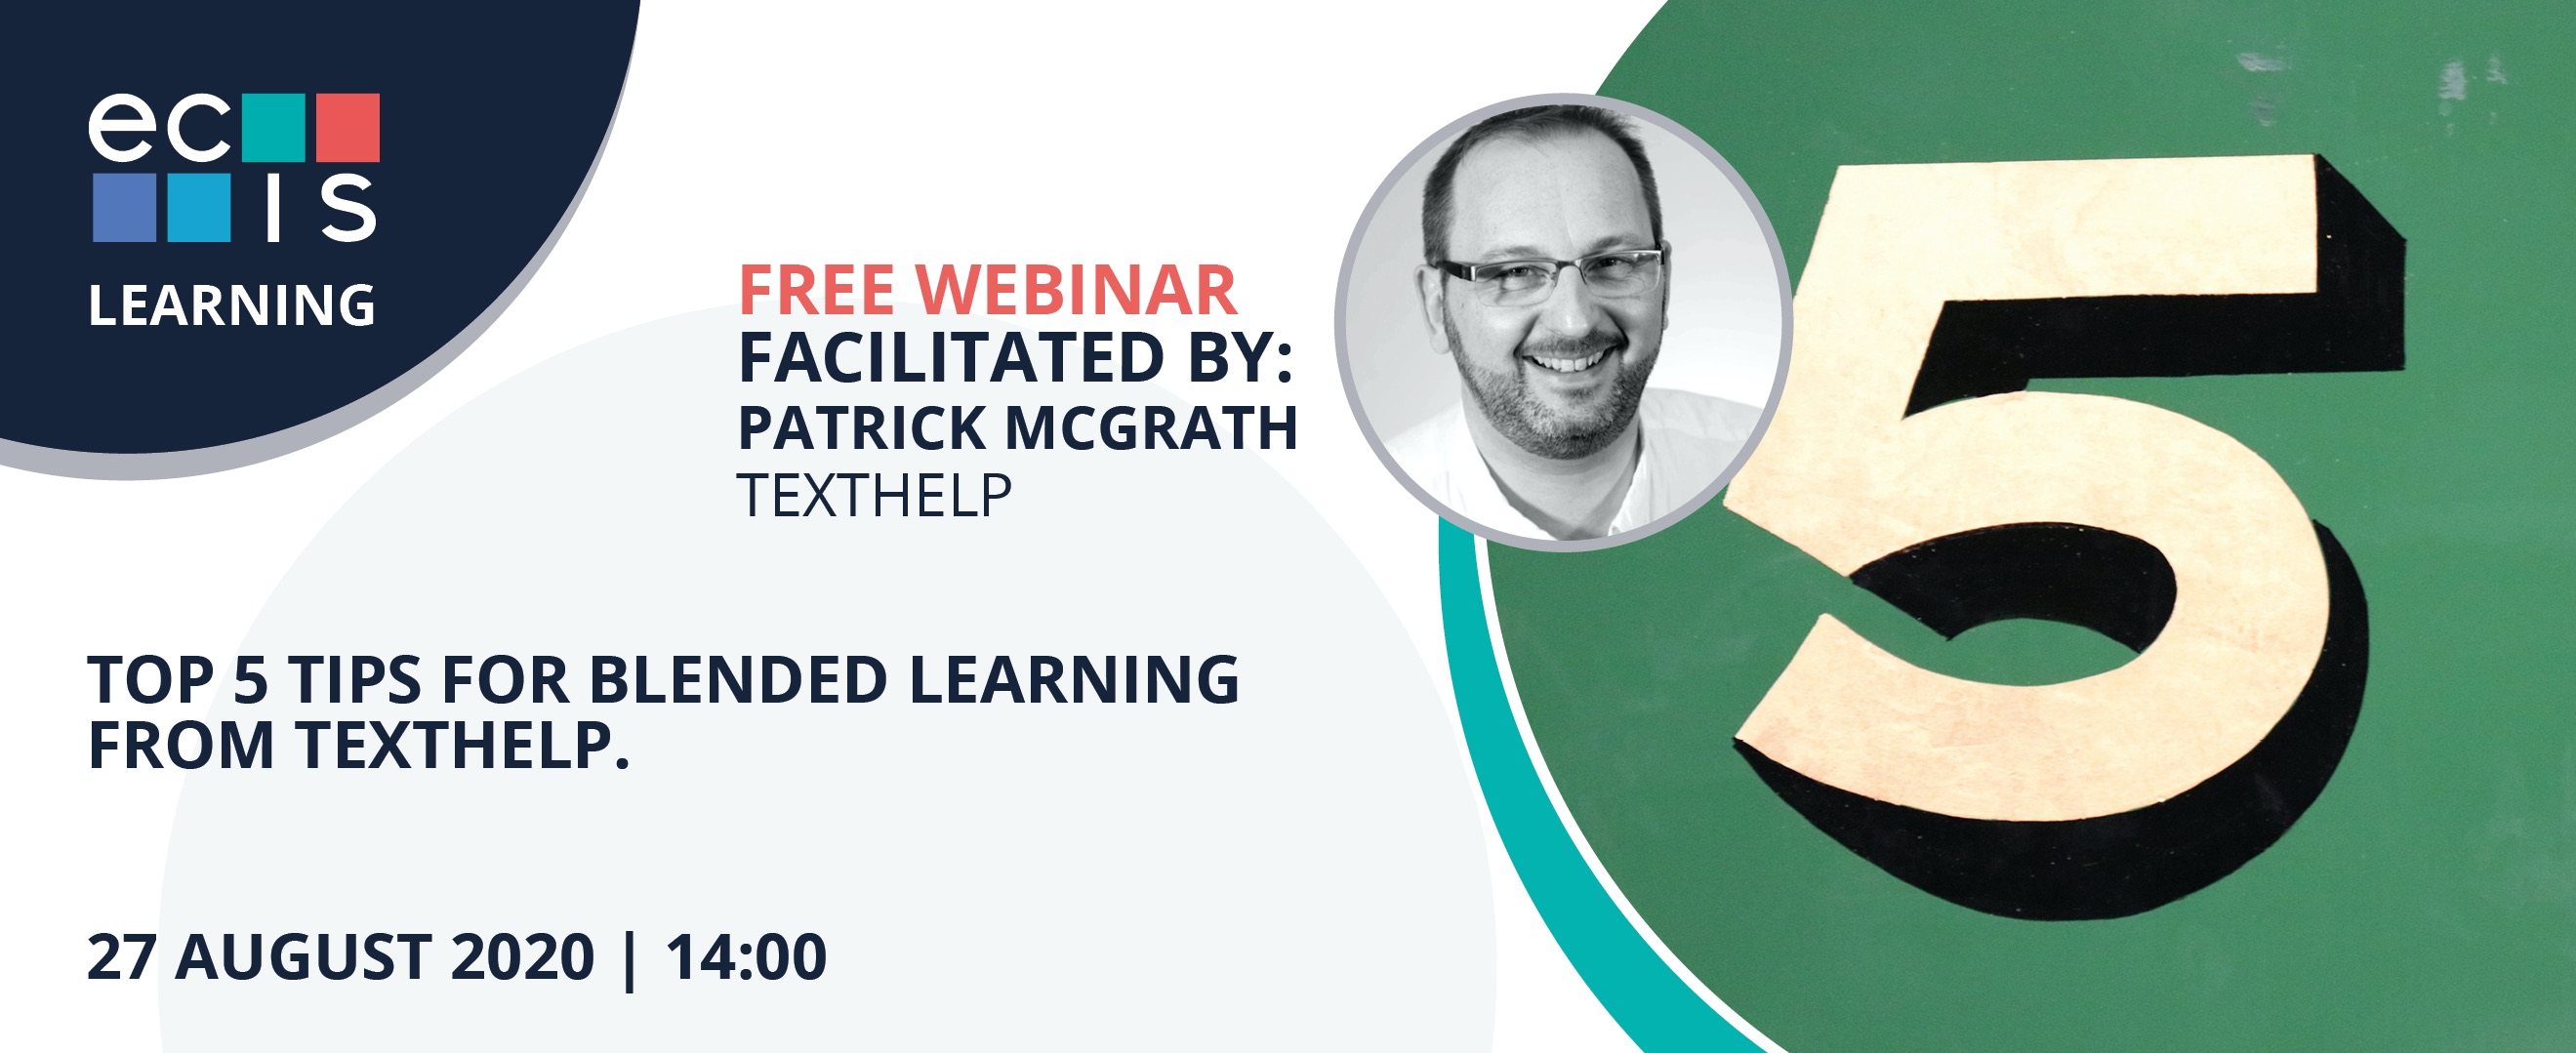 Webinar: Top 5 Tips for Blended Learning from Texthelp